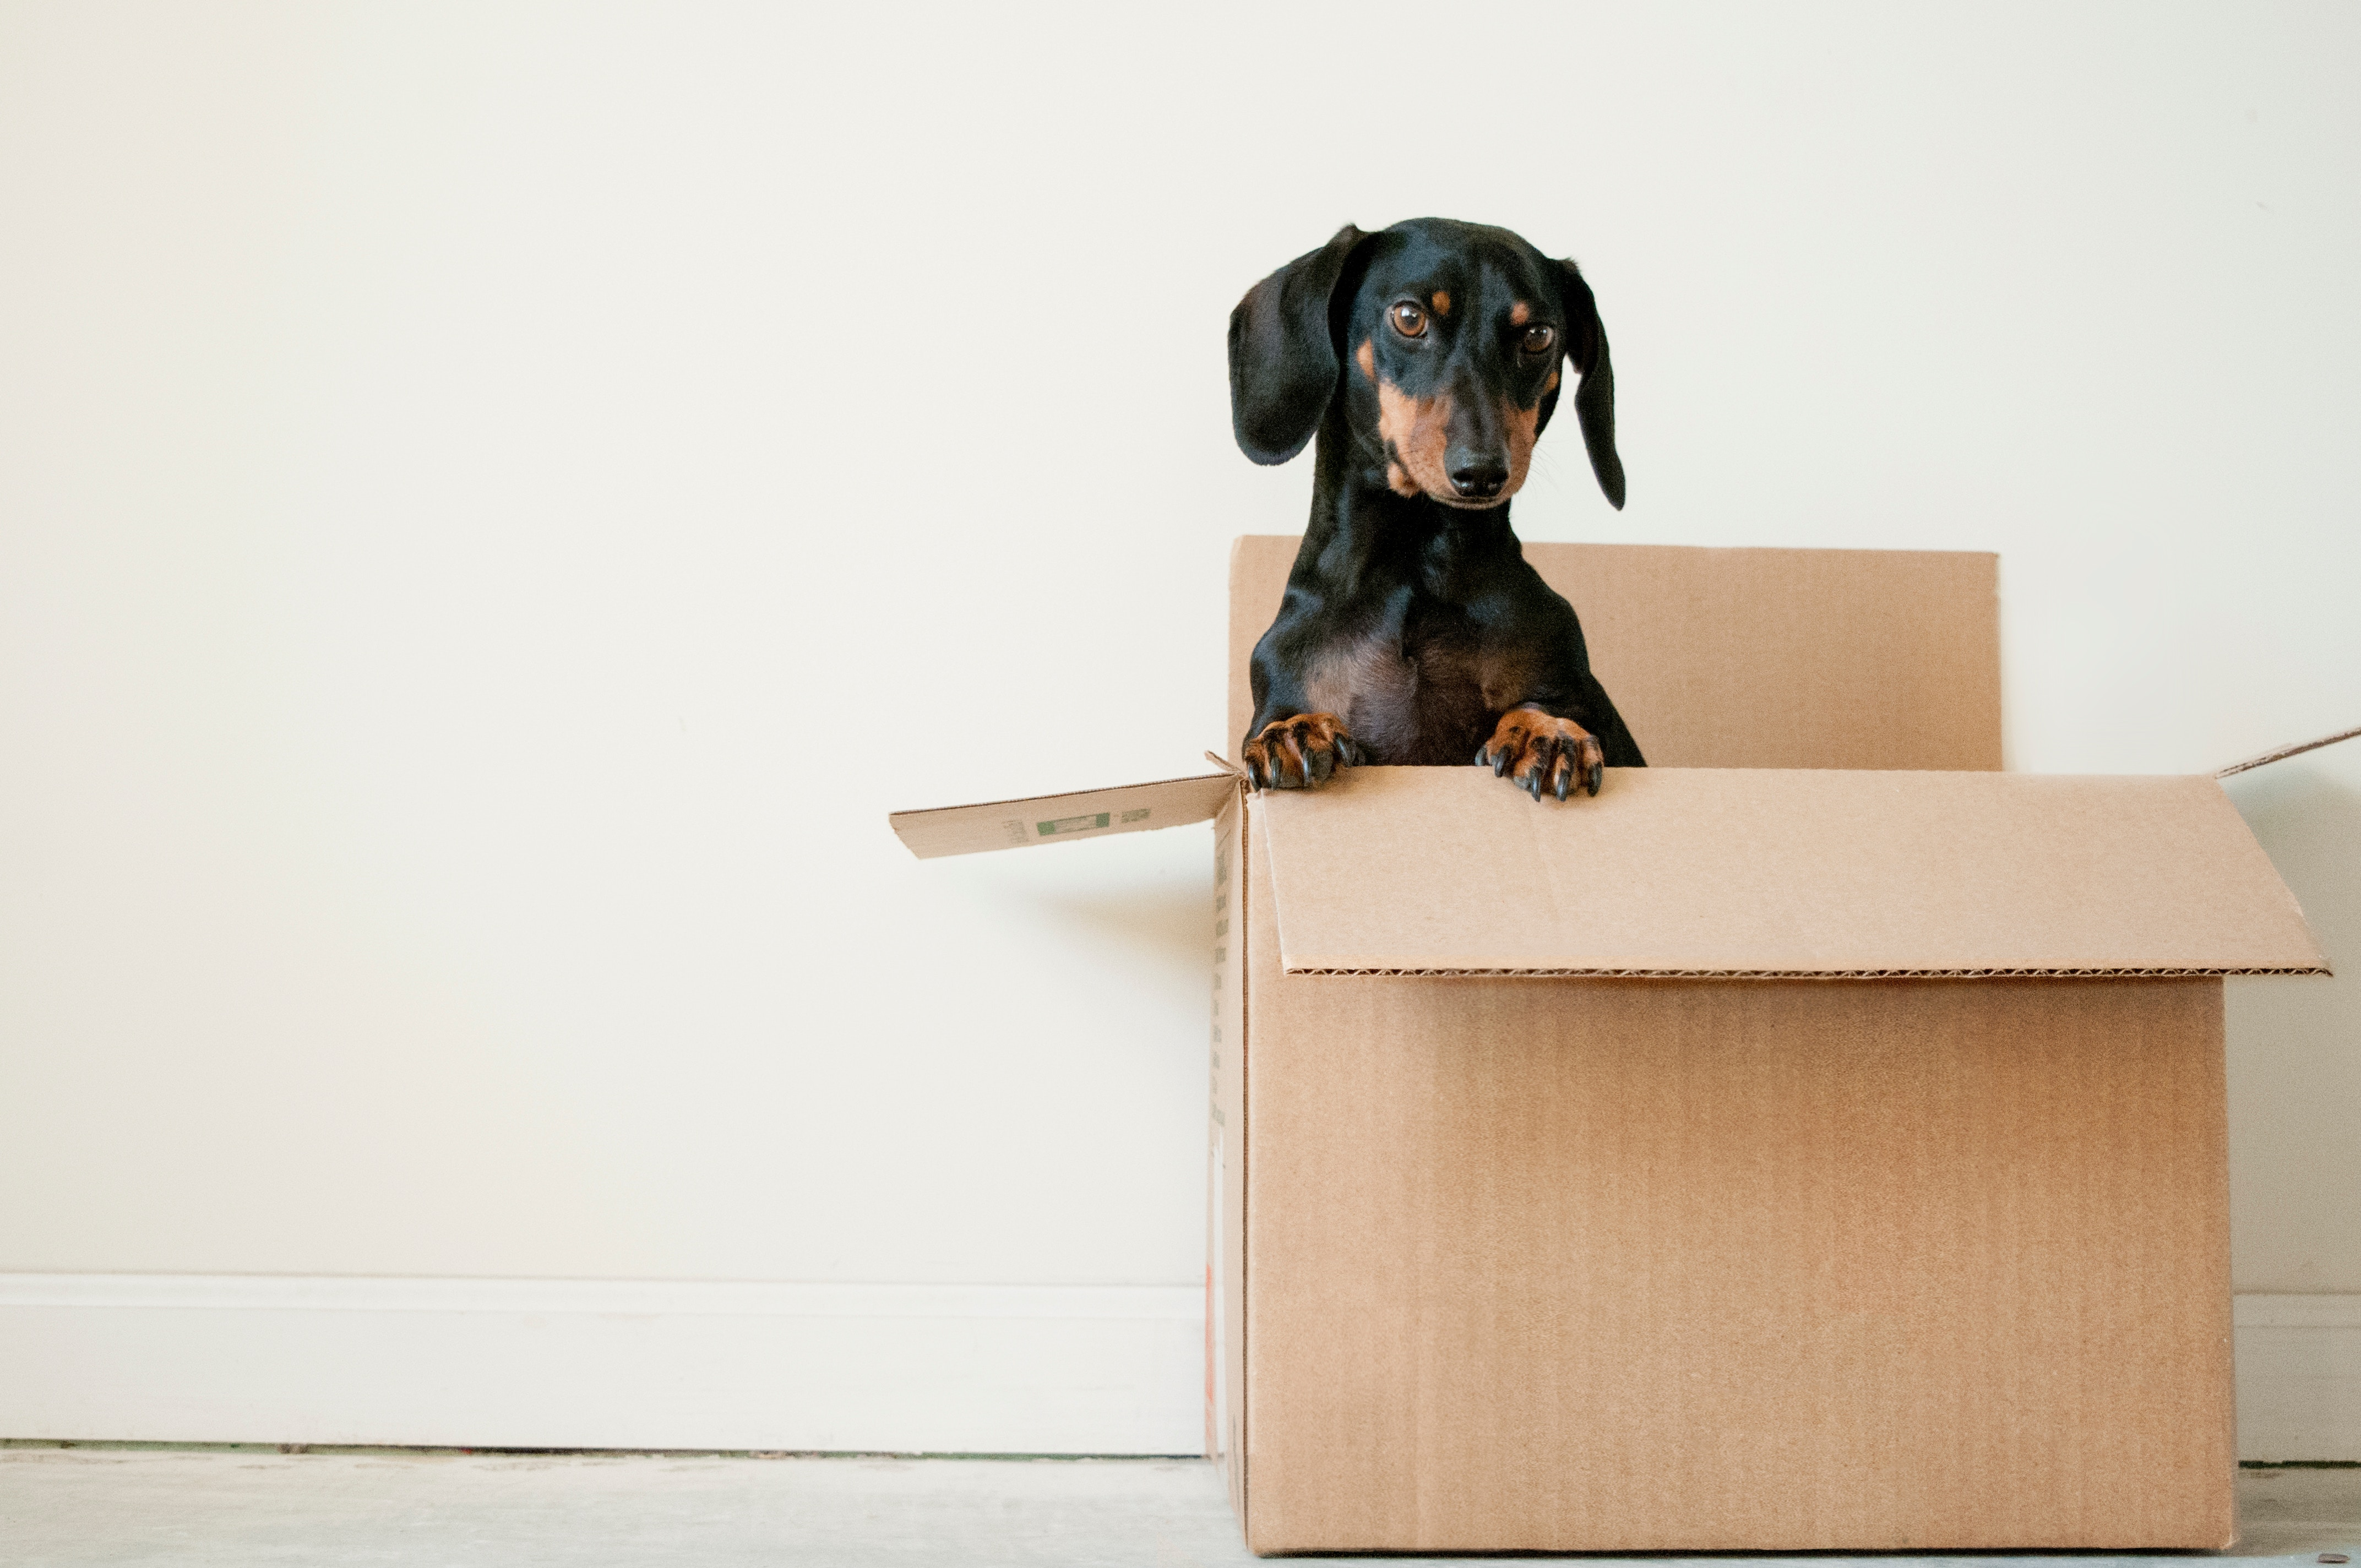 dachshund in a box